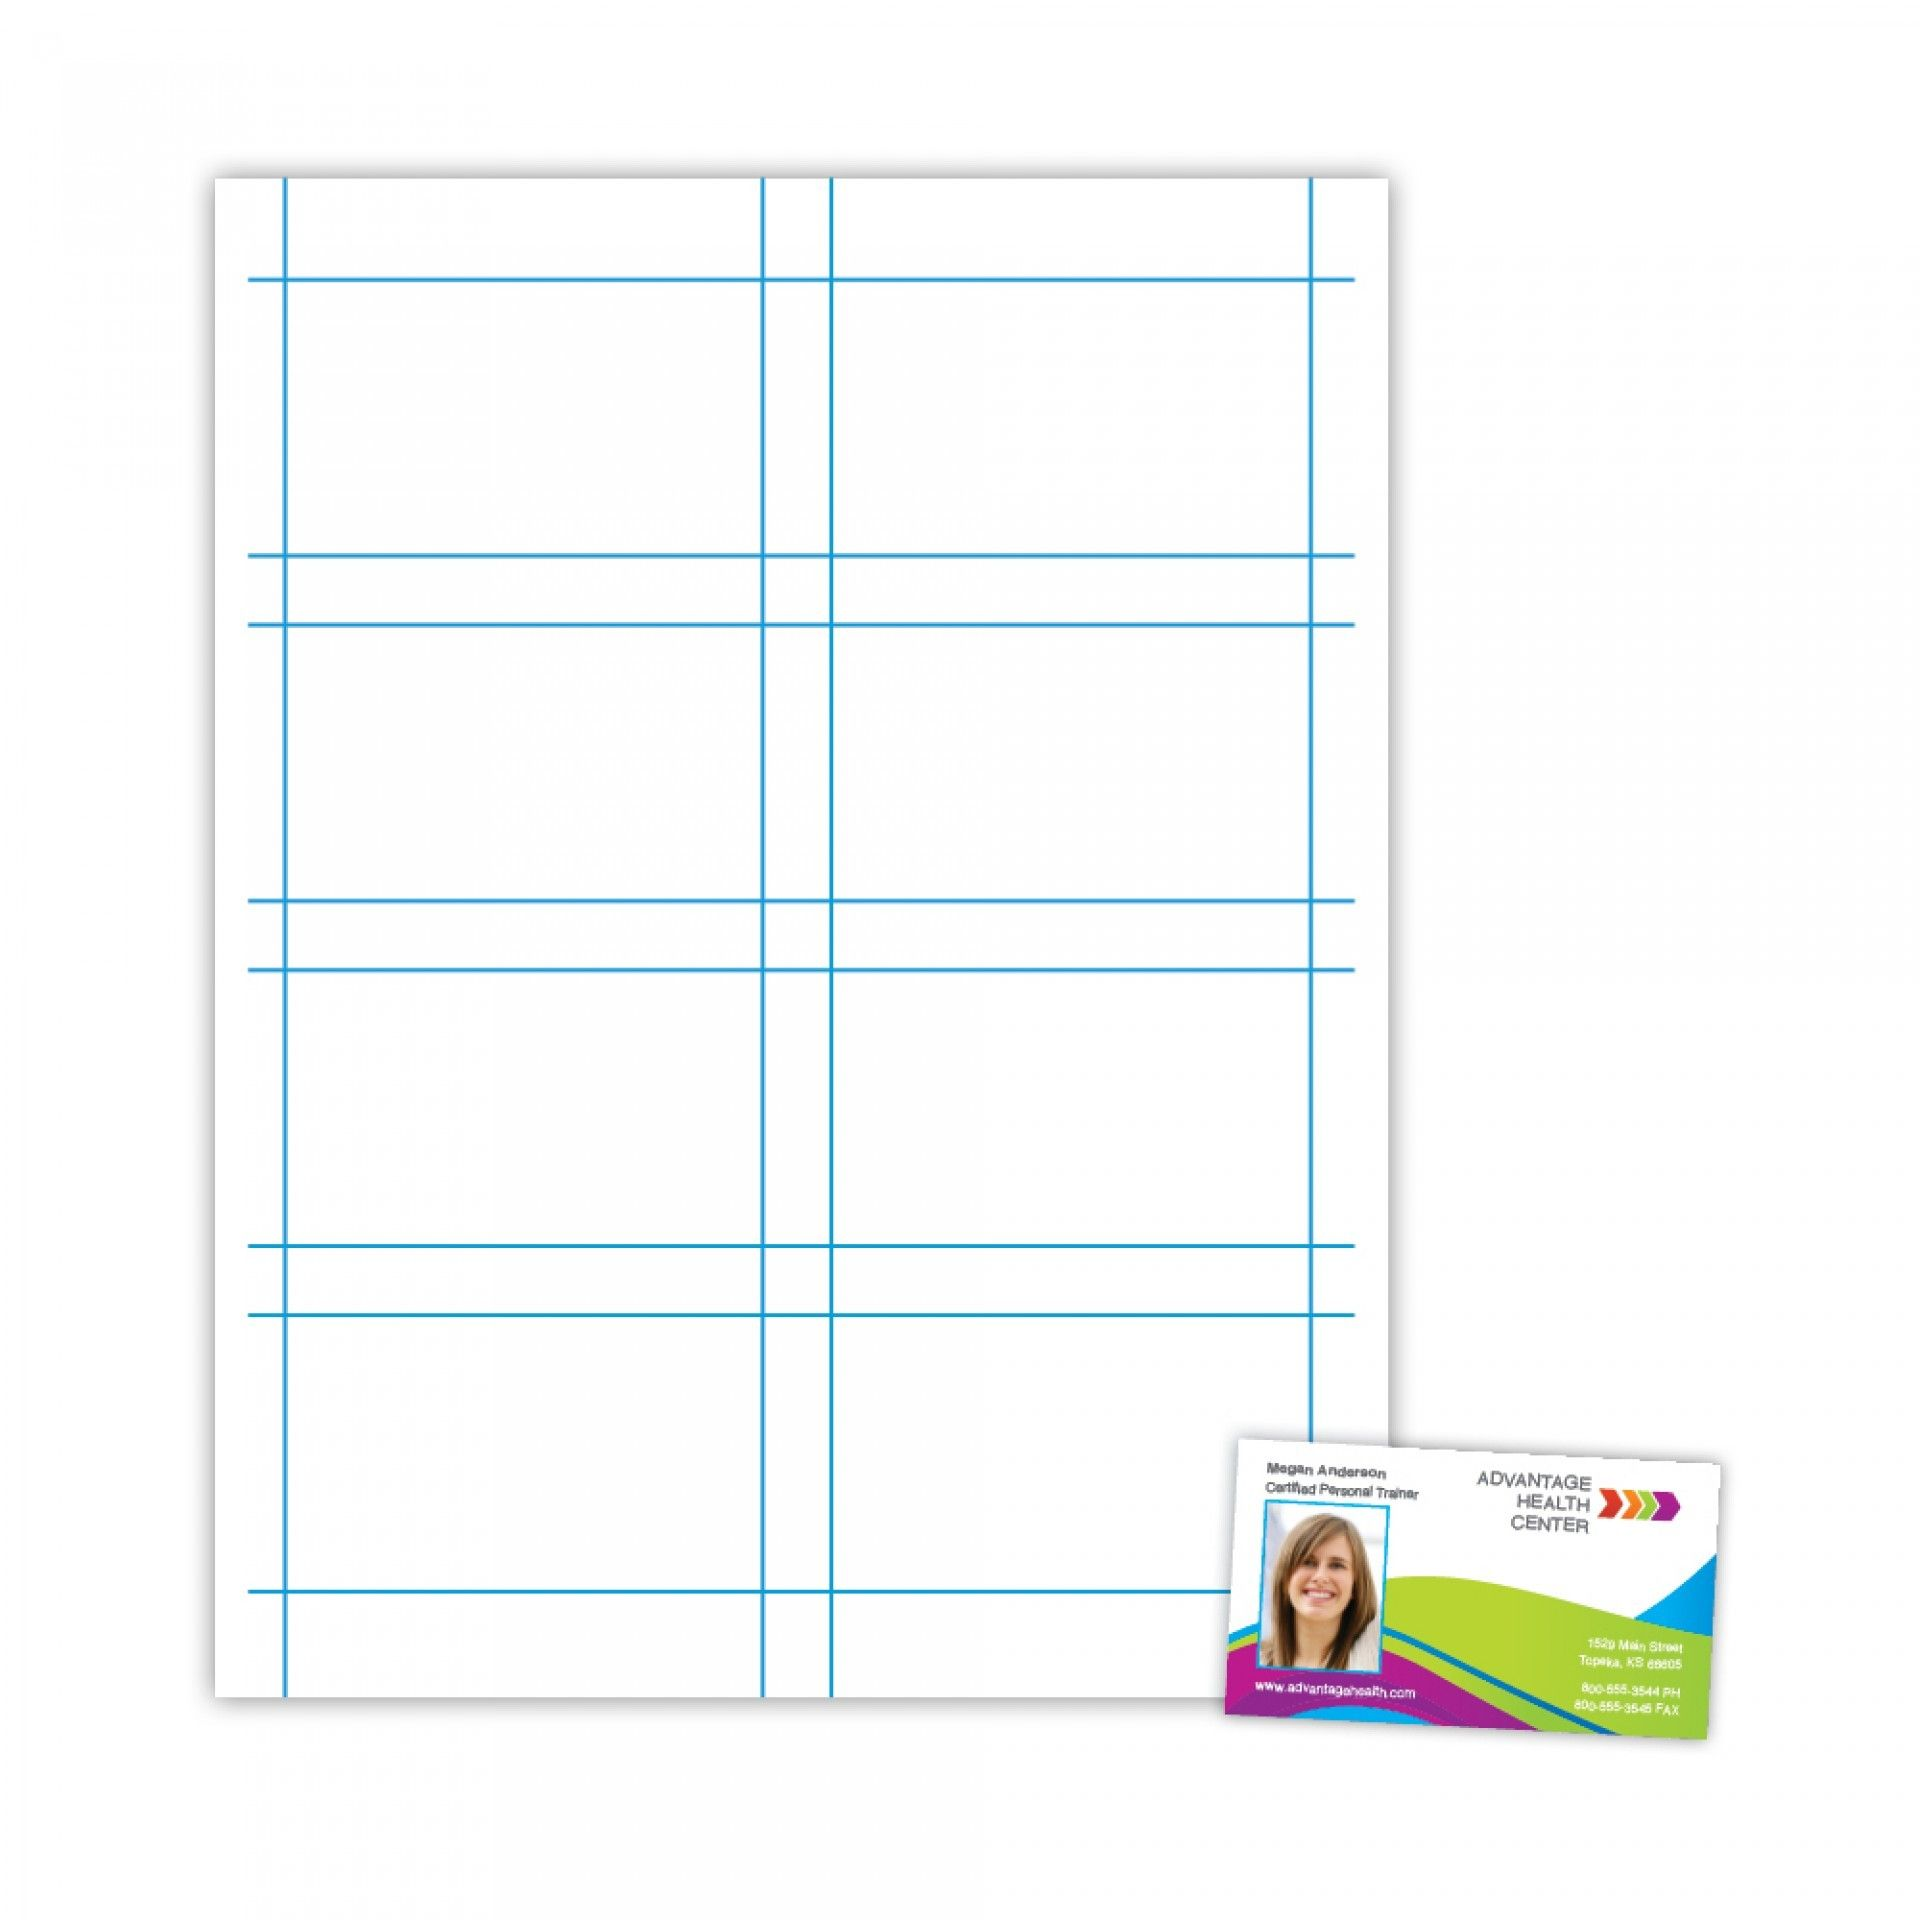 039 Blank Business Card Template Free Avery Cards Valid Inside Blank Busines Business Card Template Photoshop Free Business Card Templates Blank Business Cards Avery business card template photoshop